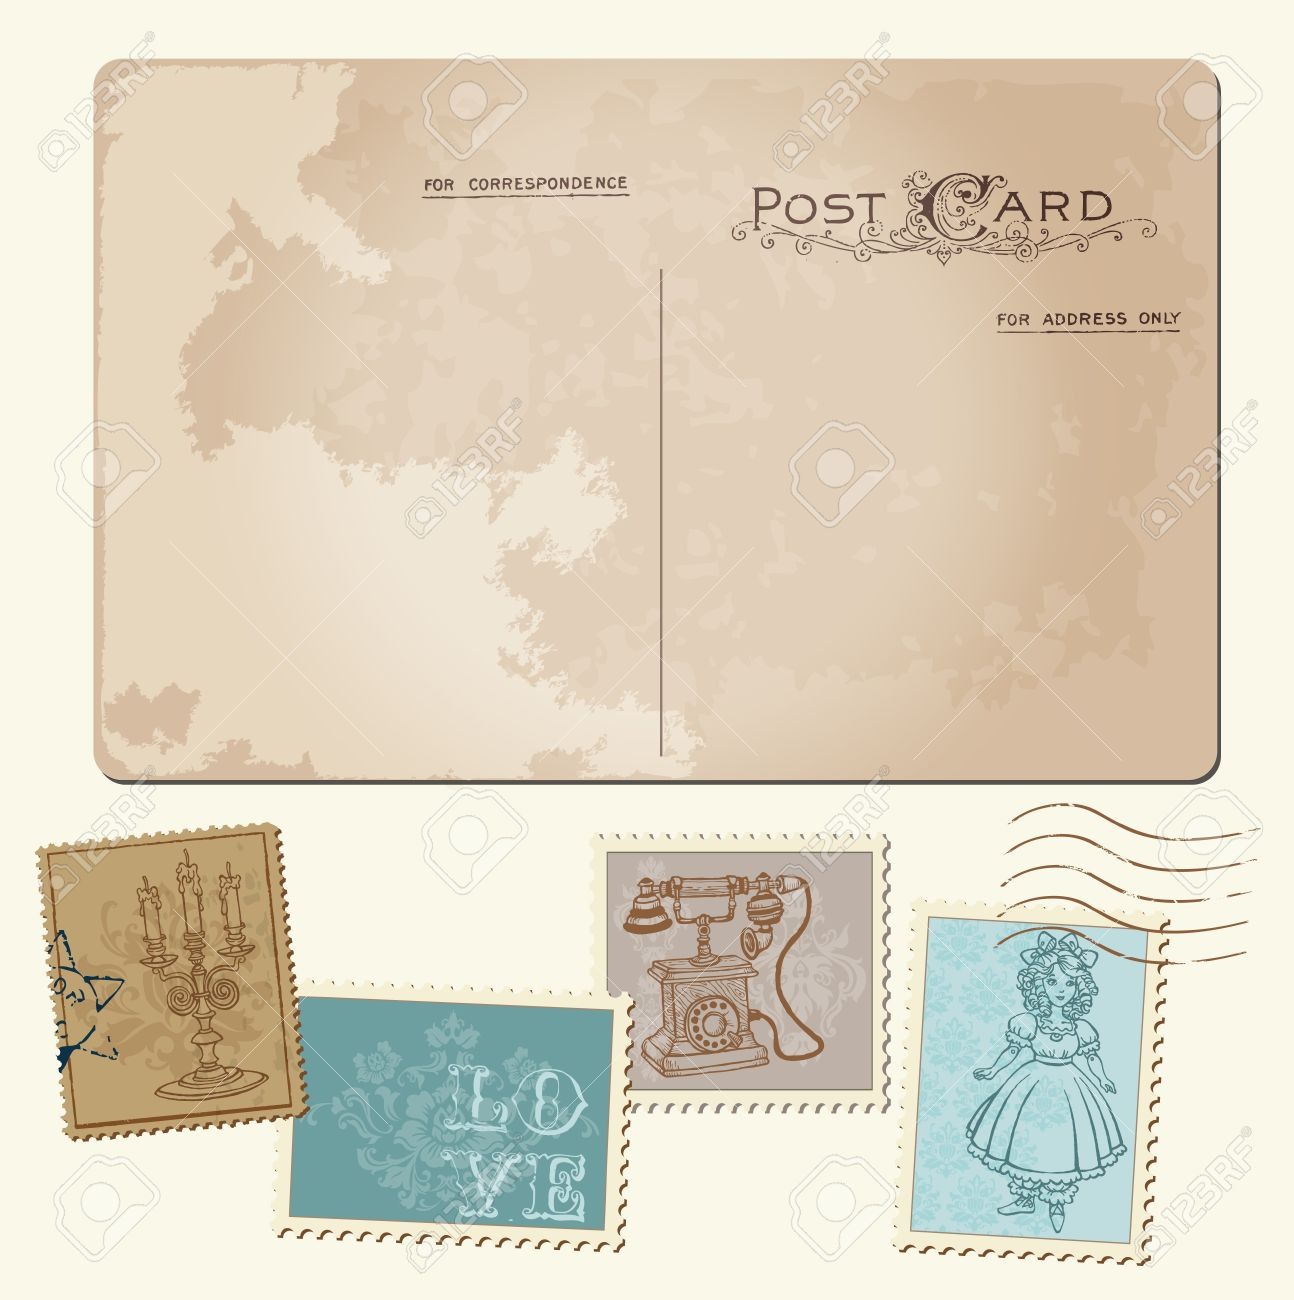 Vintage postcard and postage stamps for wedding design invitation congratulation scrapbook stock